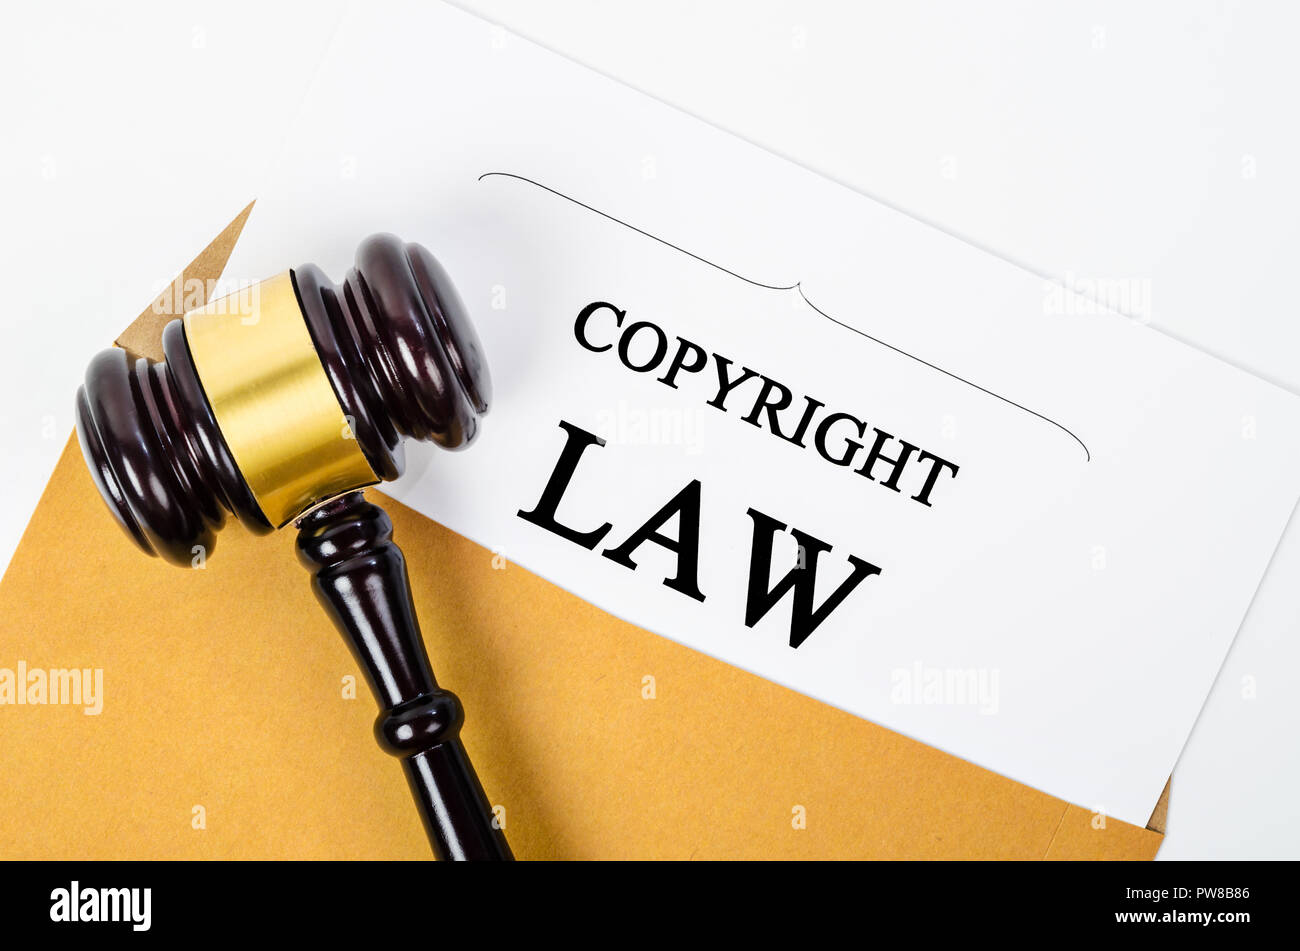 Copyright law document and a judge gavel. concept of legal education. - Stock Image